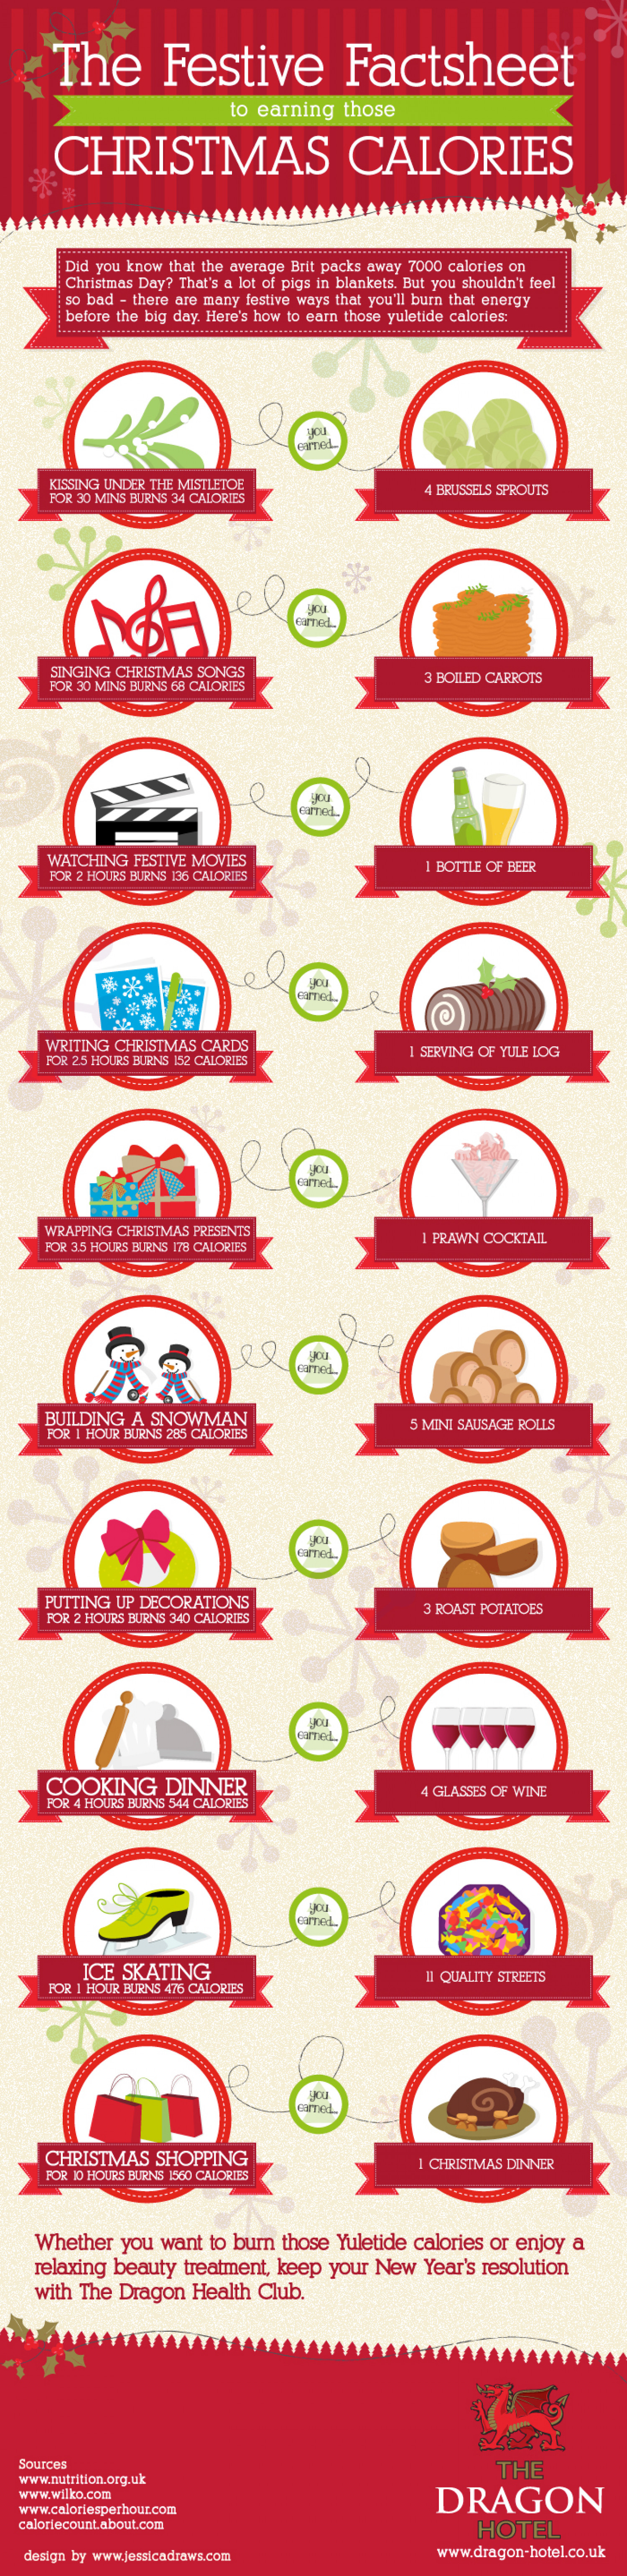 The Festive Factsheet to earning those Christmas Calories Infographic